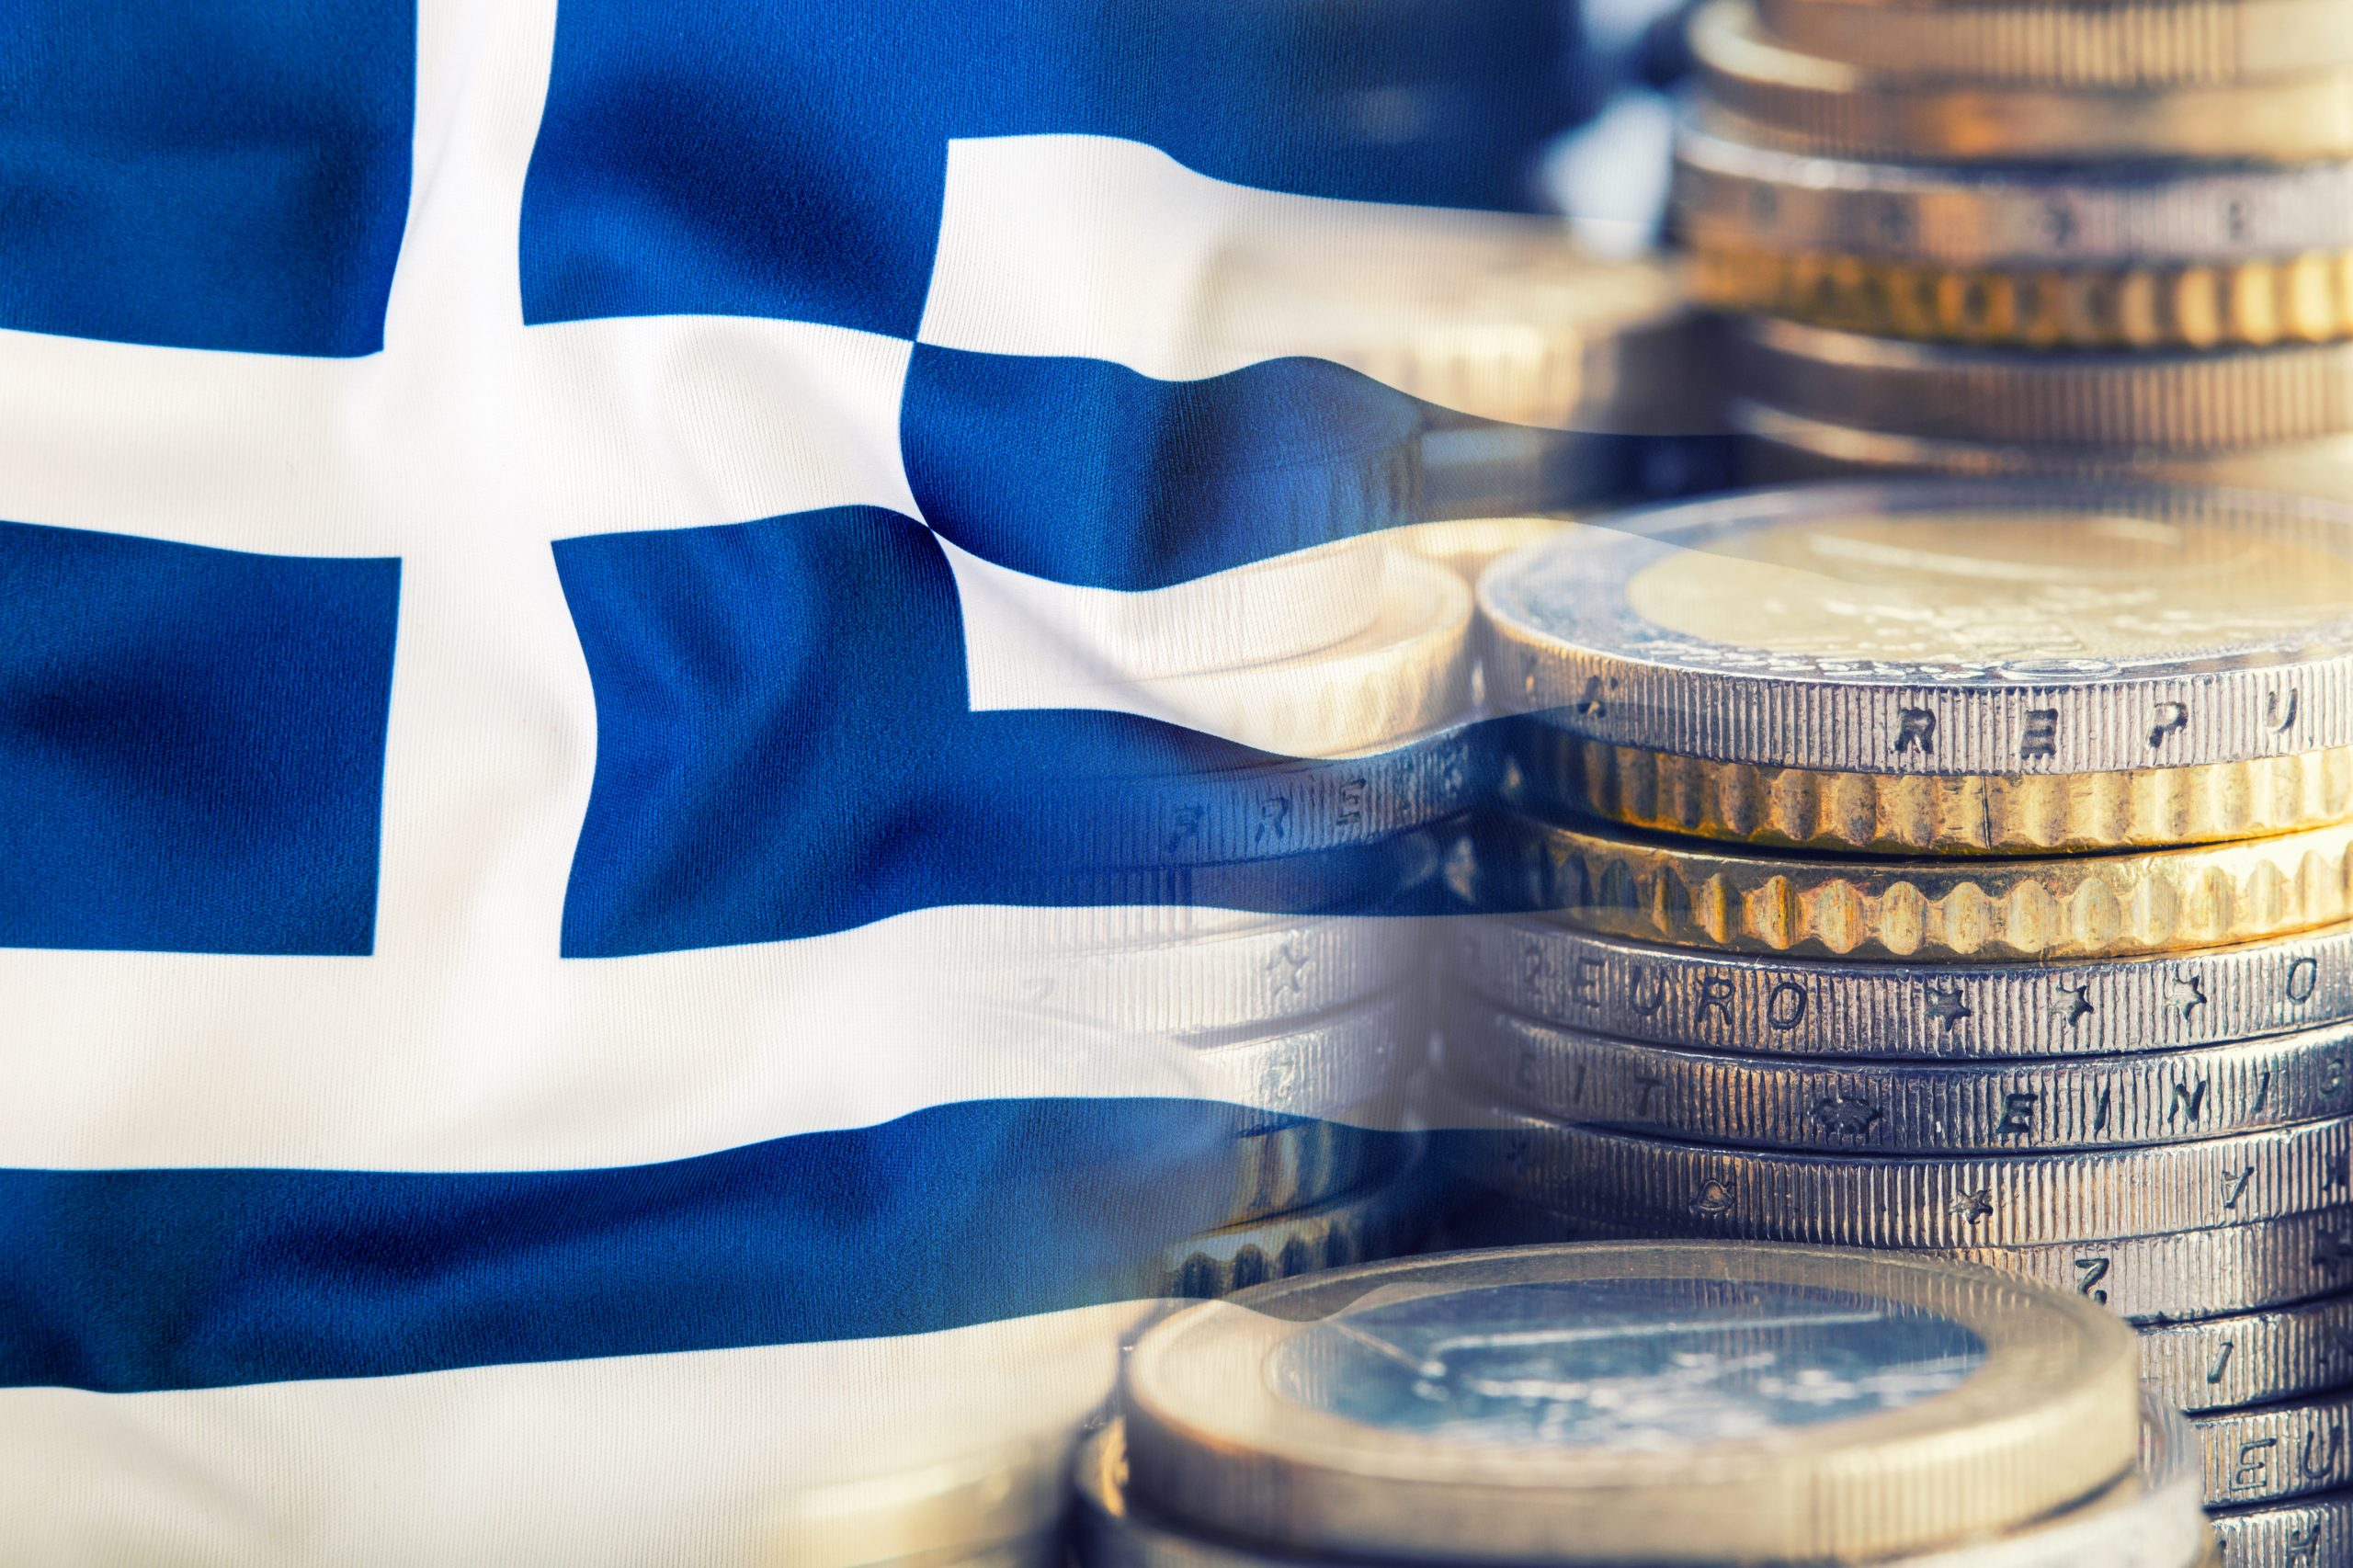 Surrogacy Cost Greece: Is It Expensive or Affordable?